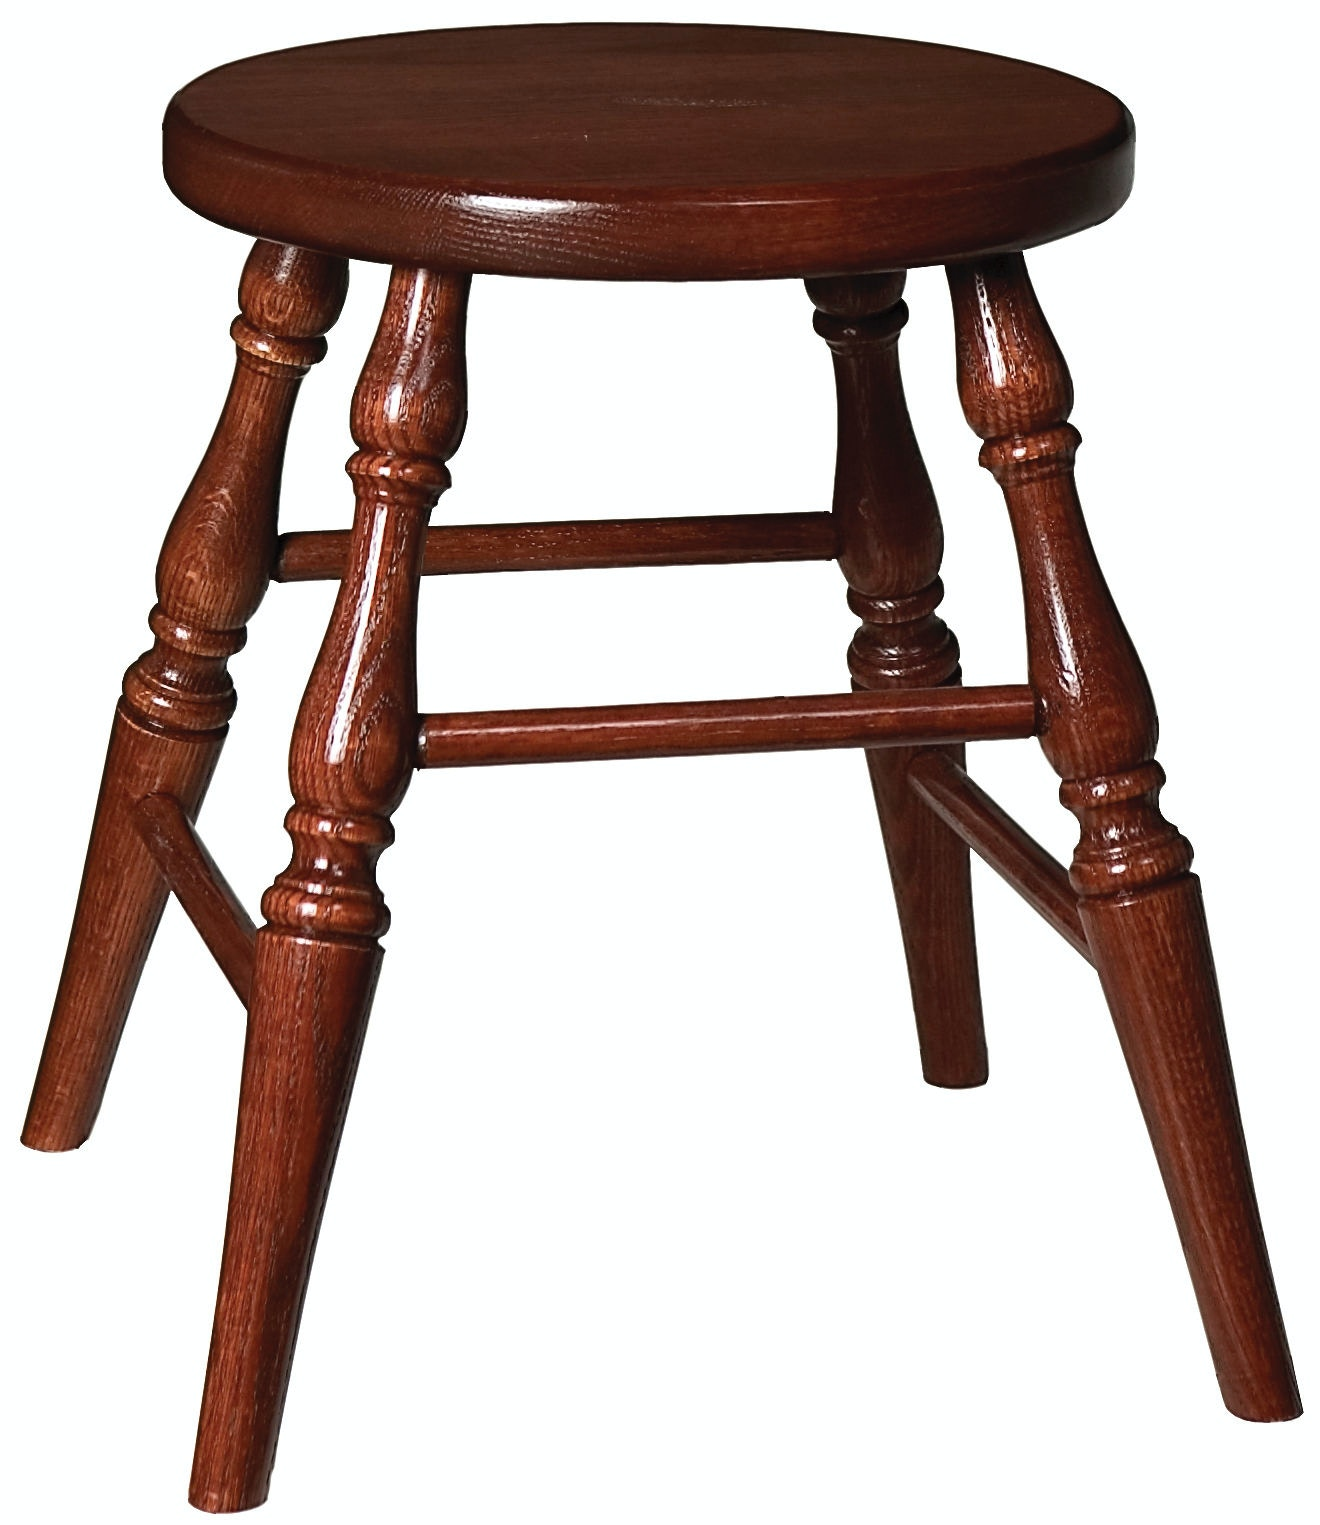 Willow Valley Bedroom Vanity Stool Wv9472 Borofka S Furniture